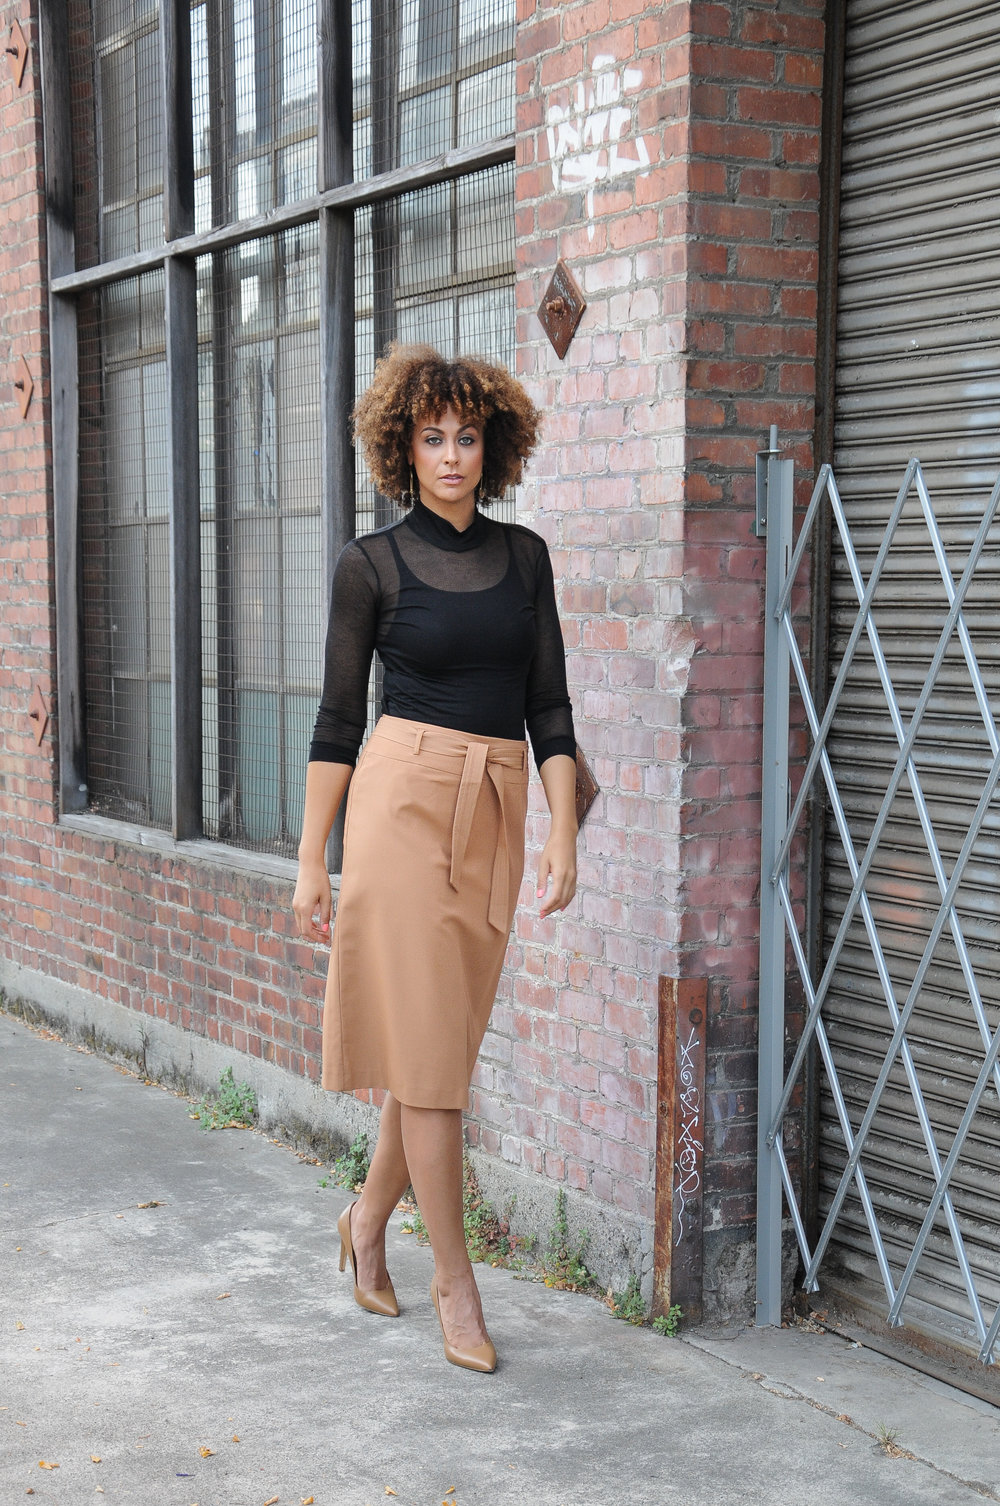 Tall Tie Waist Skirt - Long Tall Sally / Sheer Top - Long Tall Sally / Earrings - Candid Art /Pumps - Calvin Klein via Nordstrom Rack (size 12)  Photo Credit:  Ashdav Photography